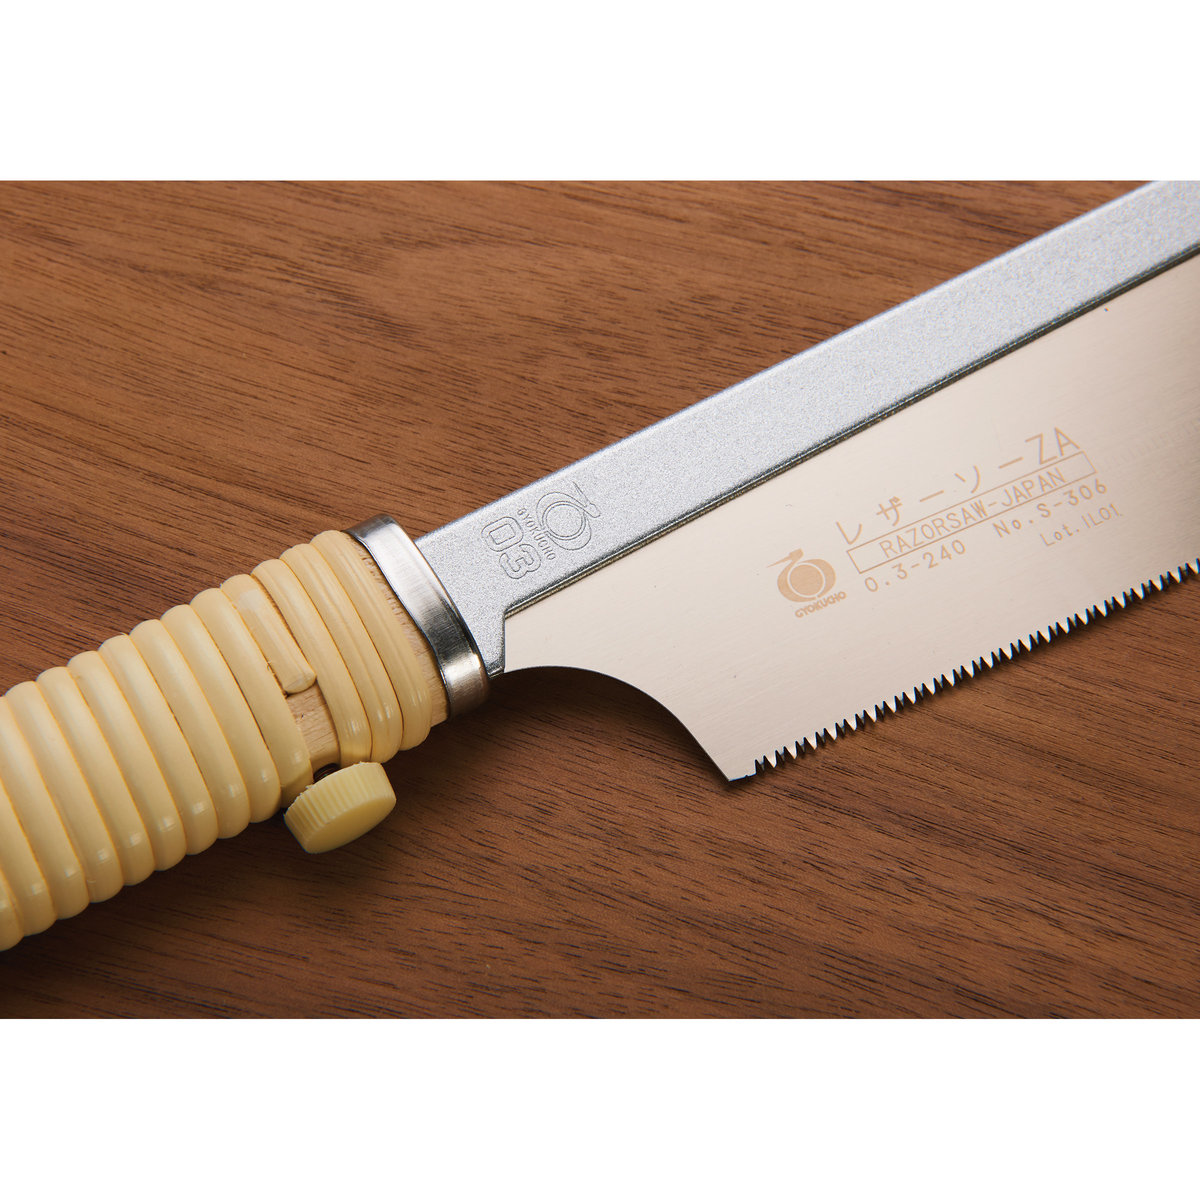 View a Larger Image of Dozuki Saw 240mm No. 306 with Replaceable Blade - Gyokucho